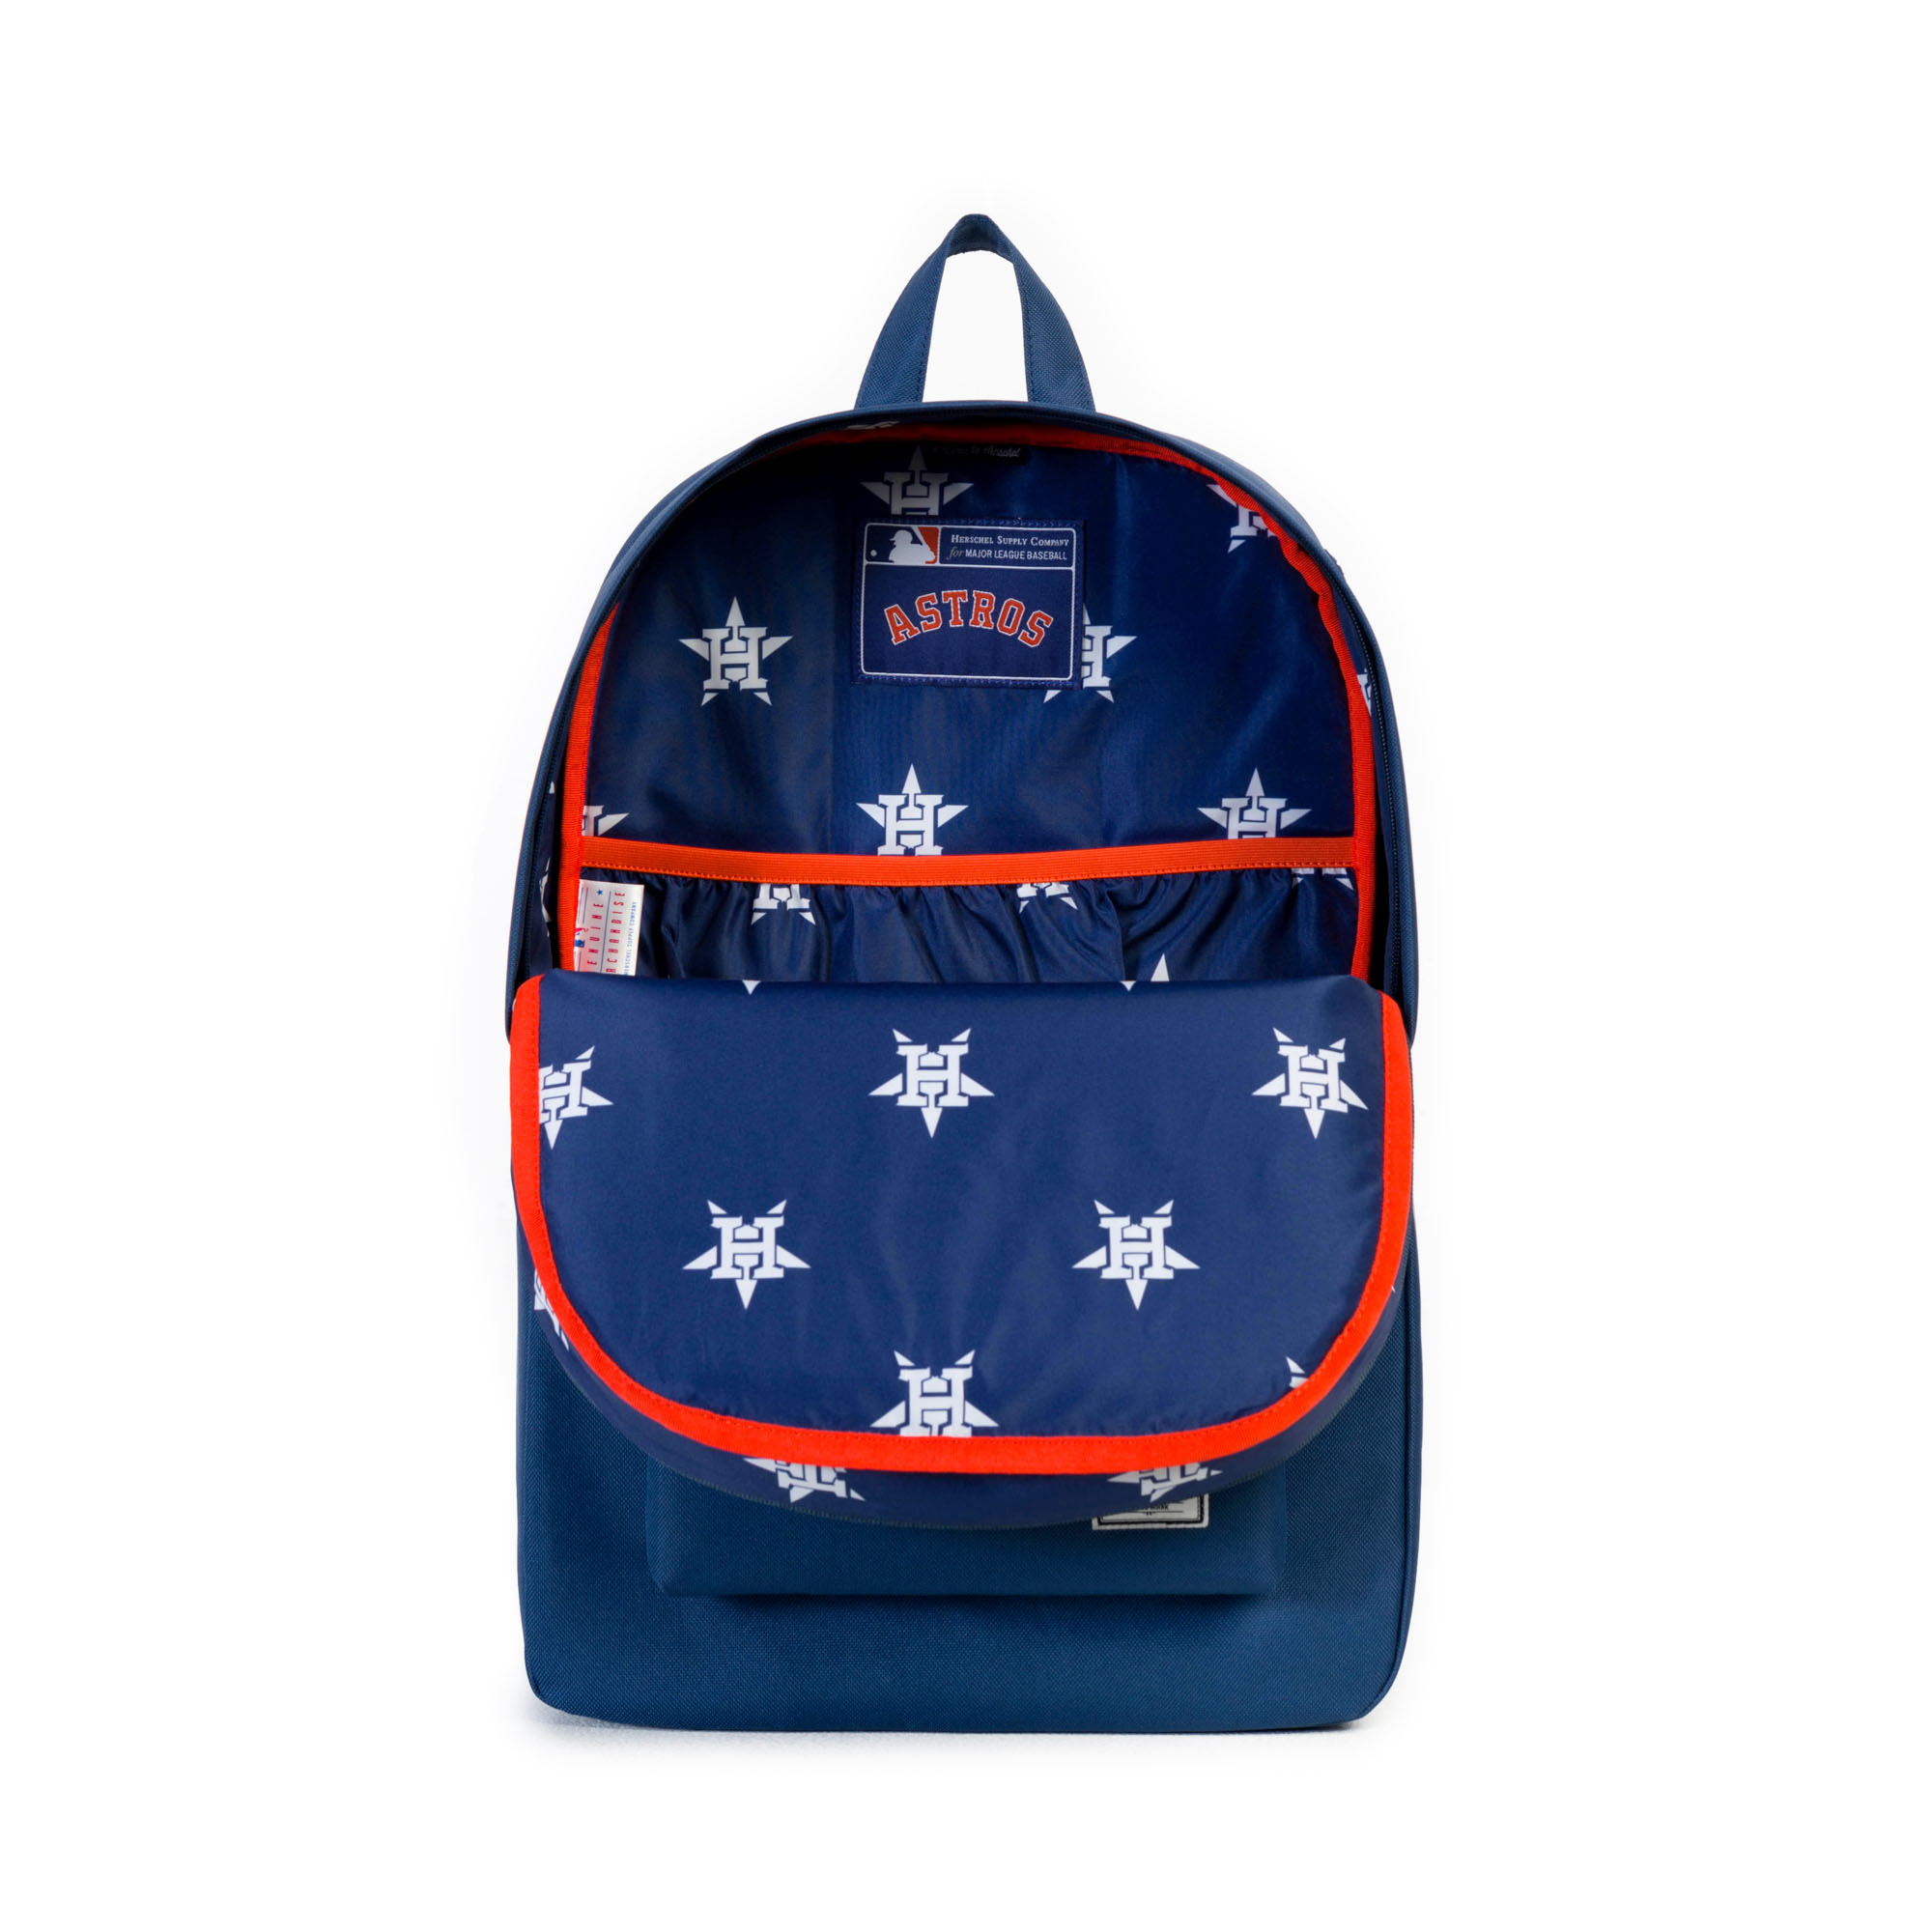 00037ff5b40 Heritage Backpack